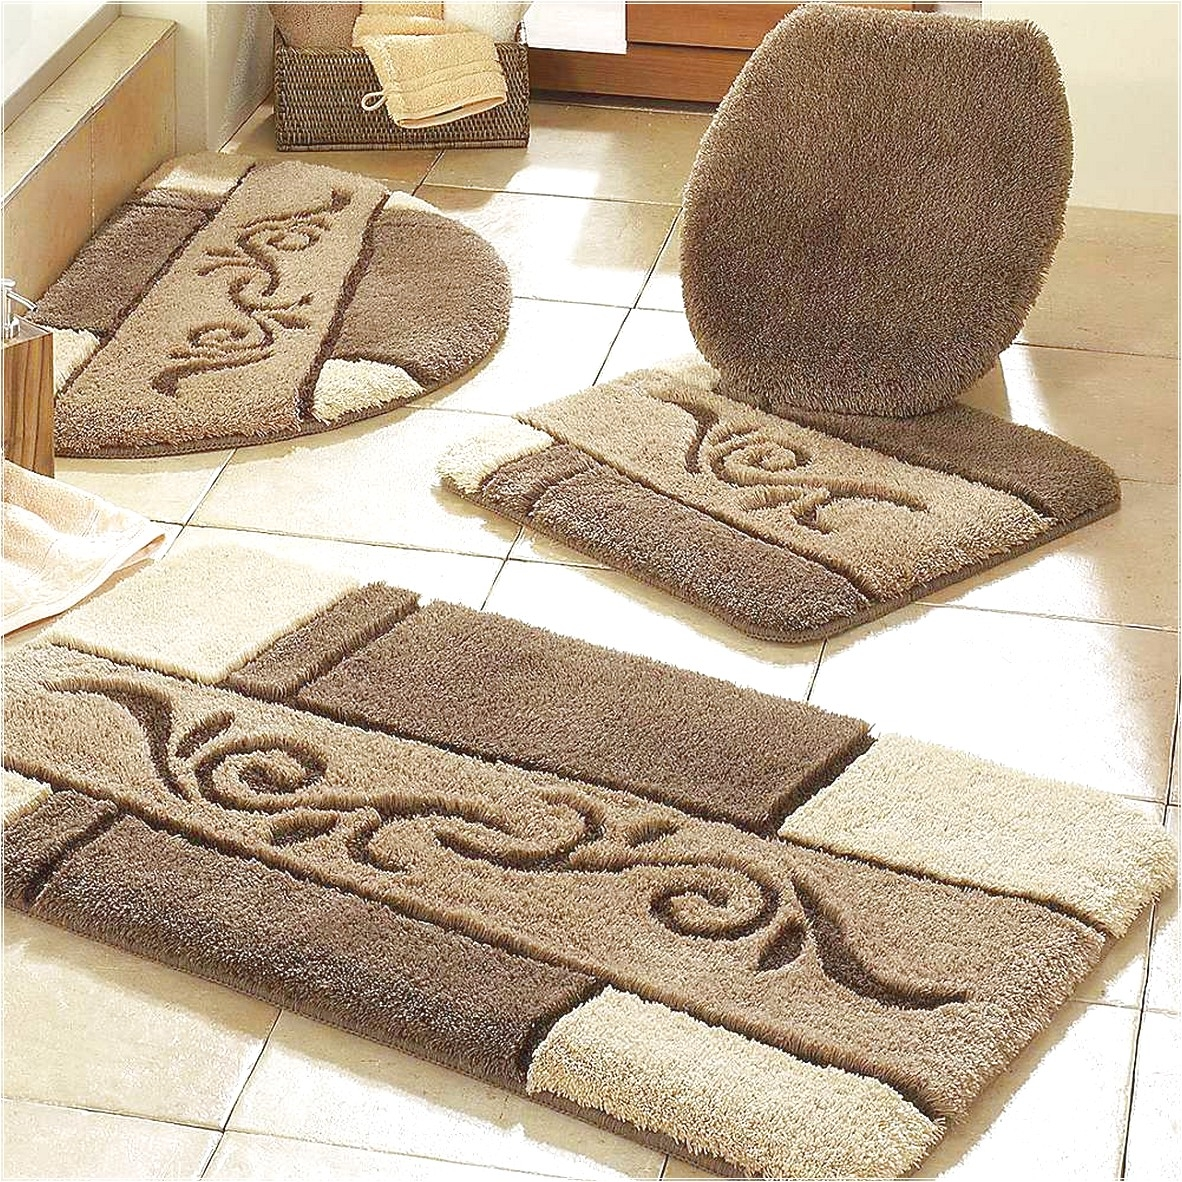 Patterned Bath Mat Sets